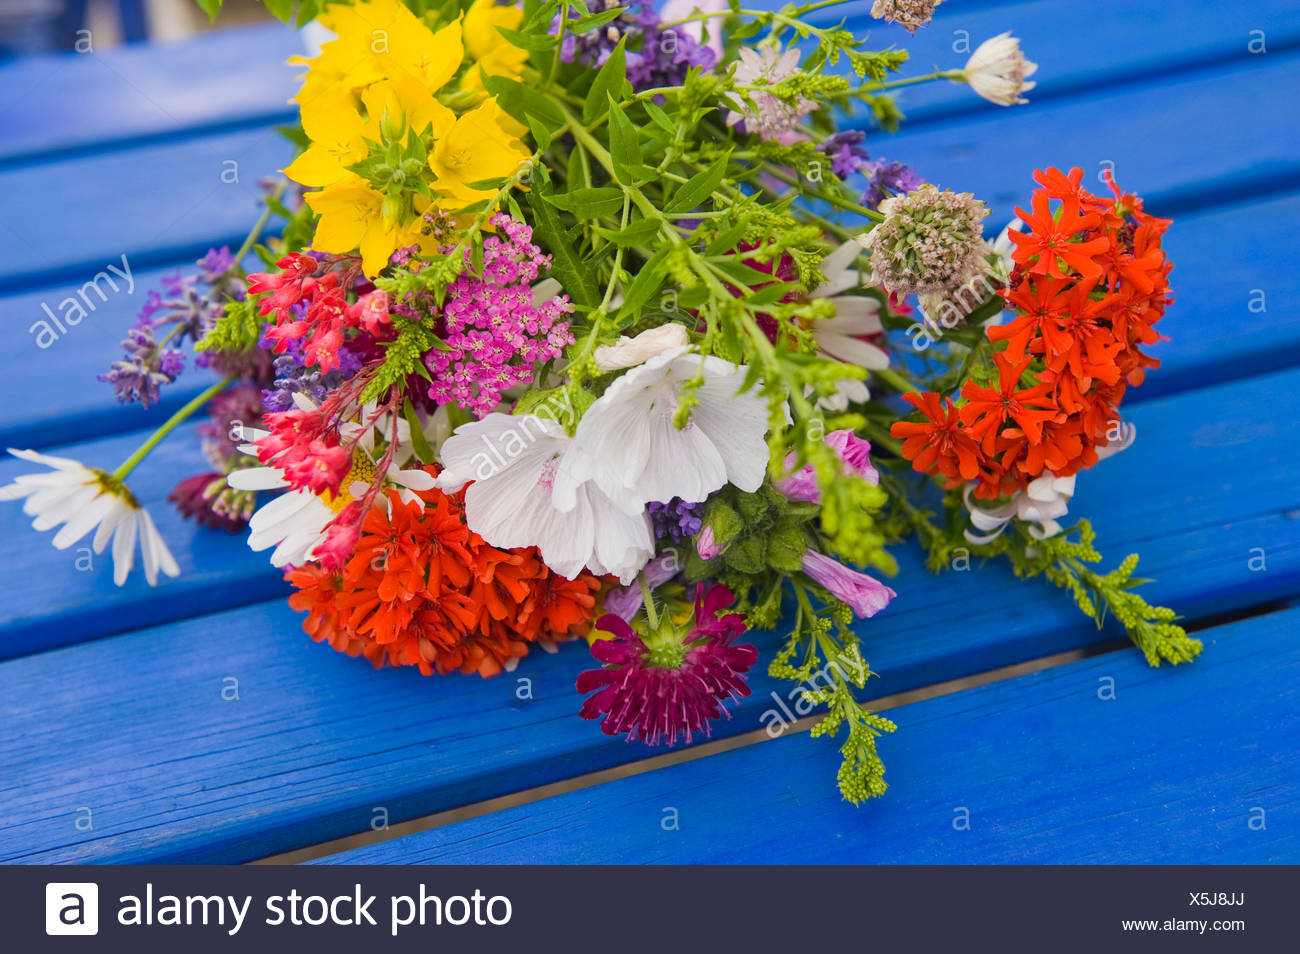 Close-up of fresh flower bouquet on the blue table - Stock Image